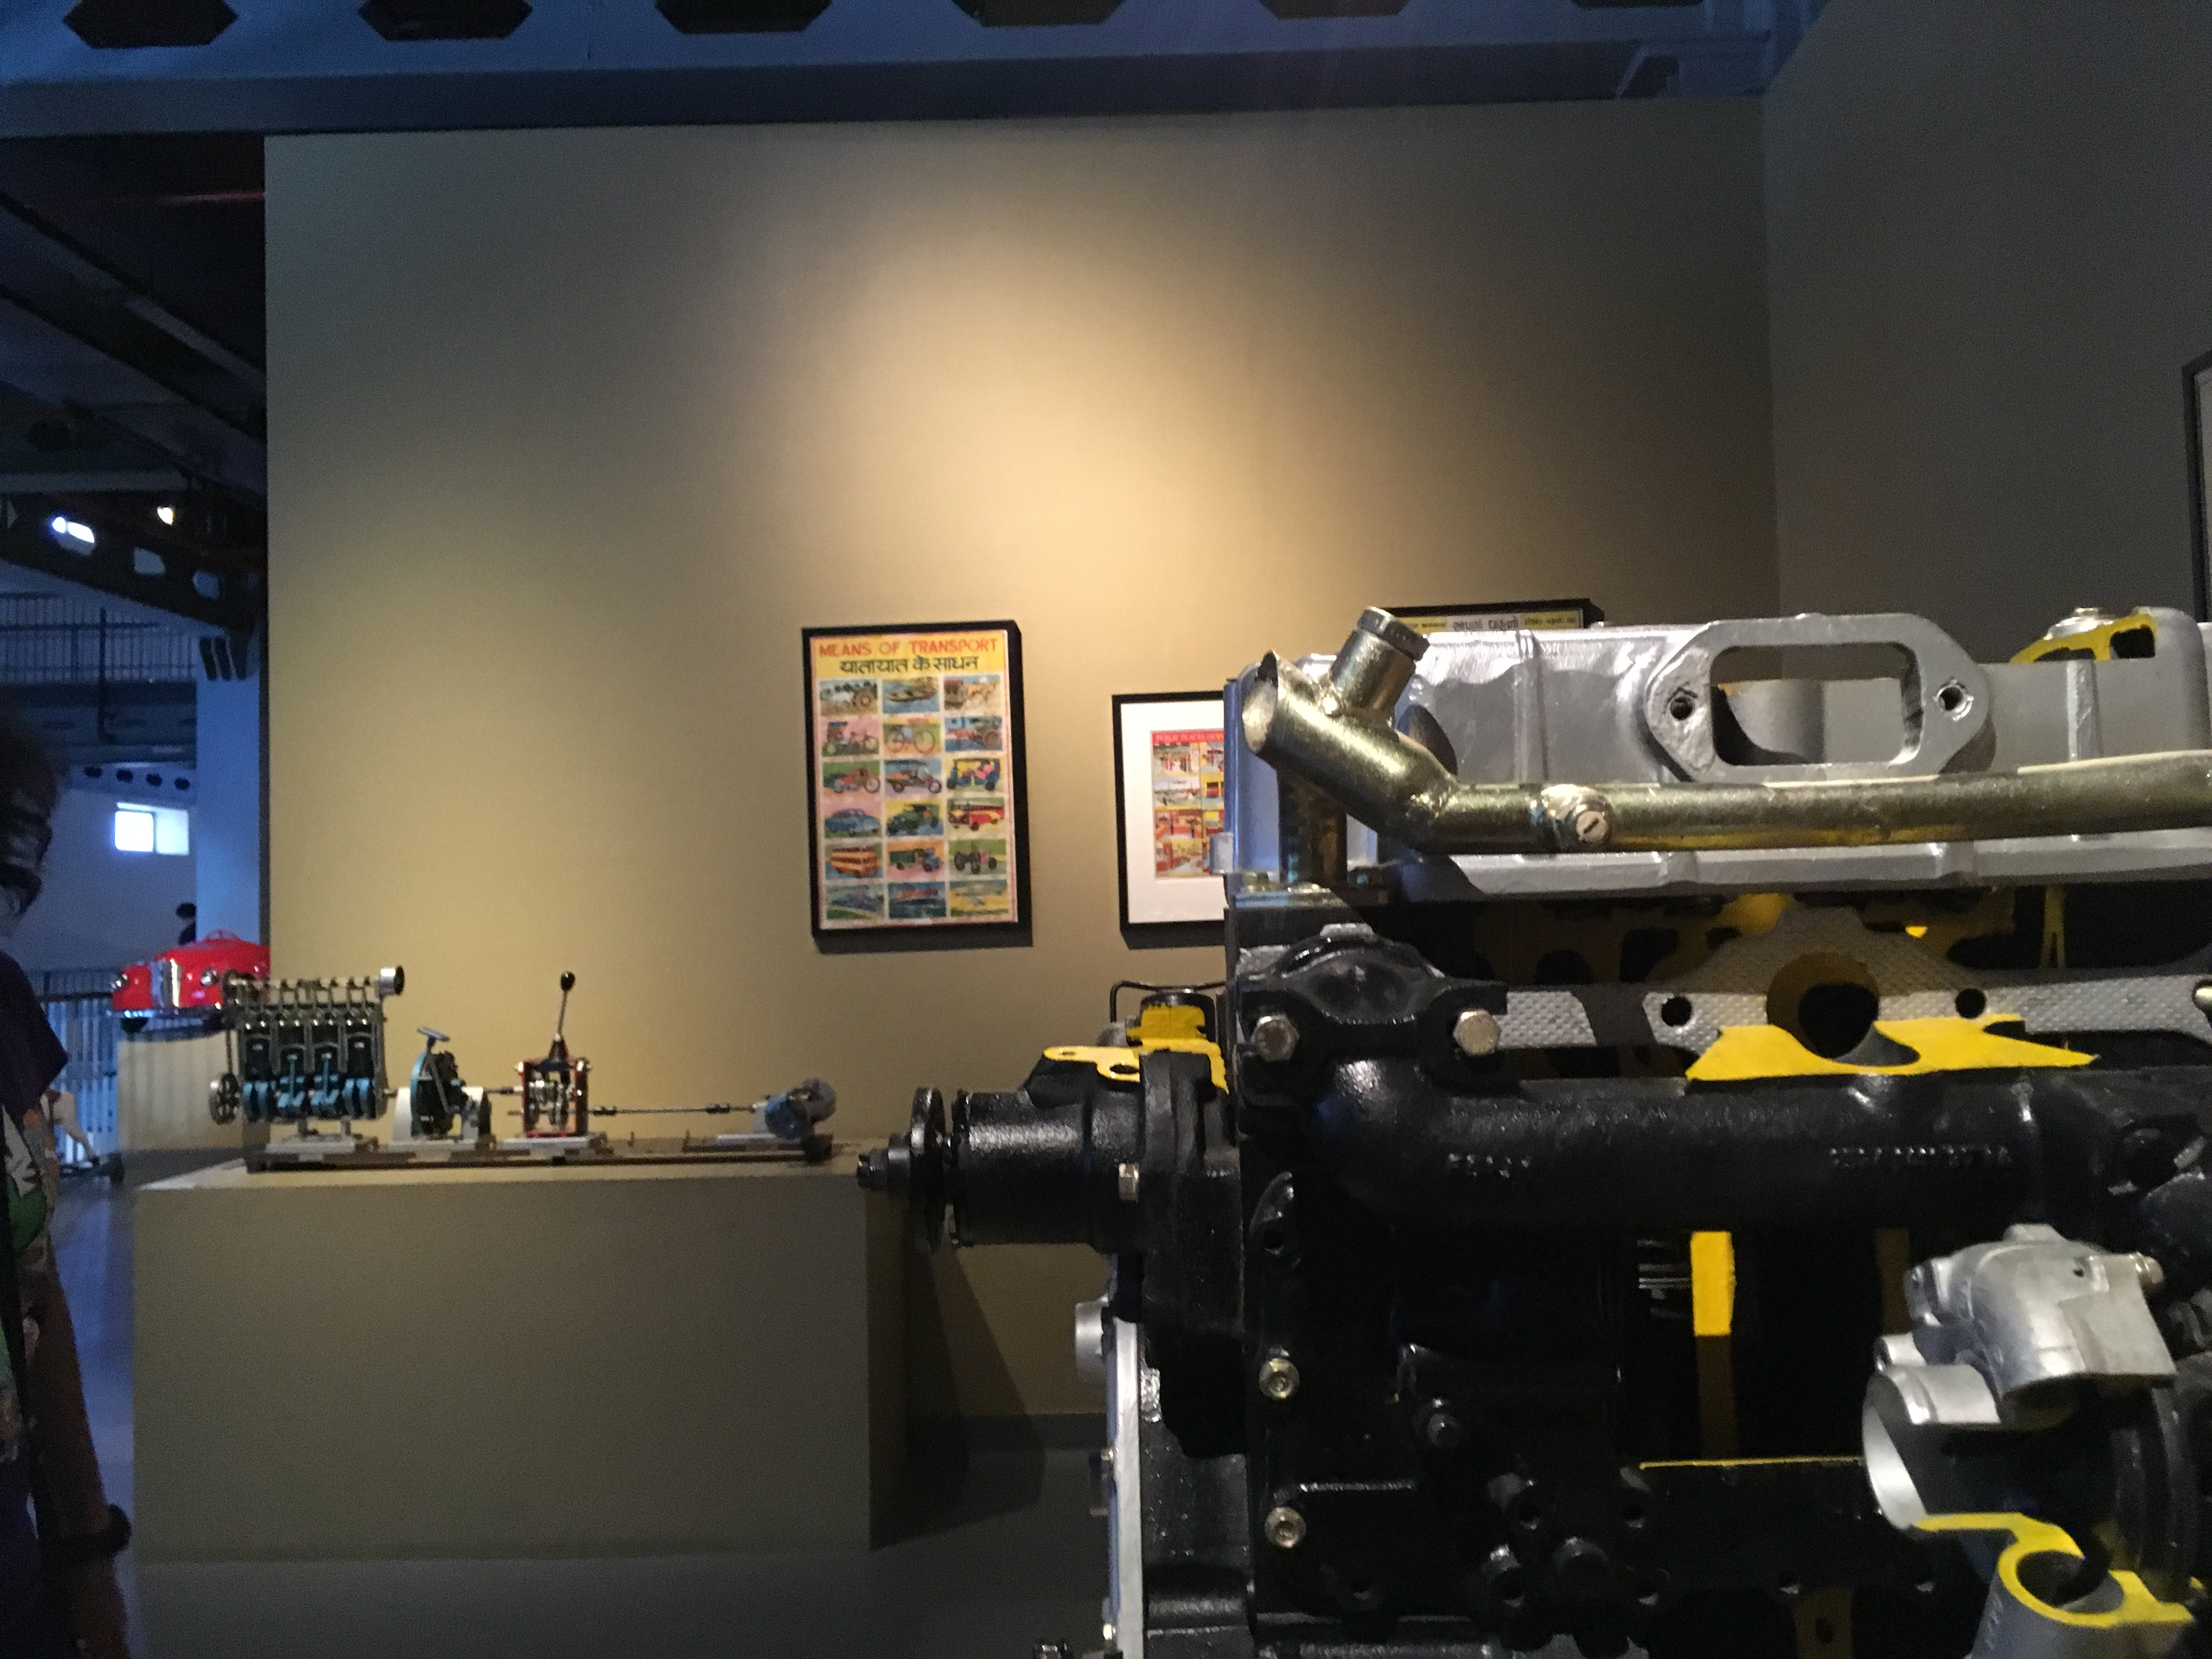 The working models of a diesel car engine on display with a petrol engine model in the background